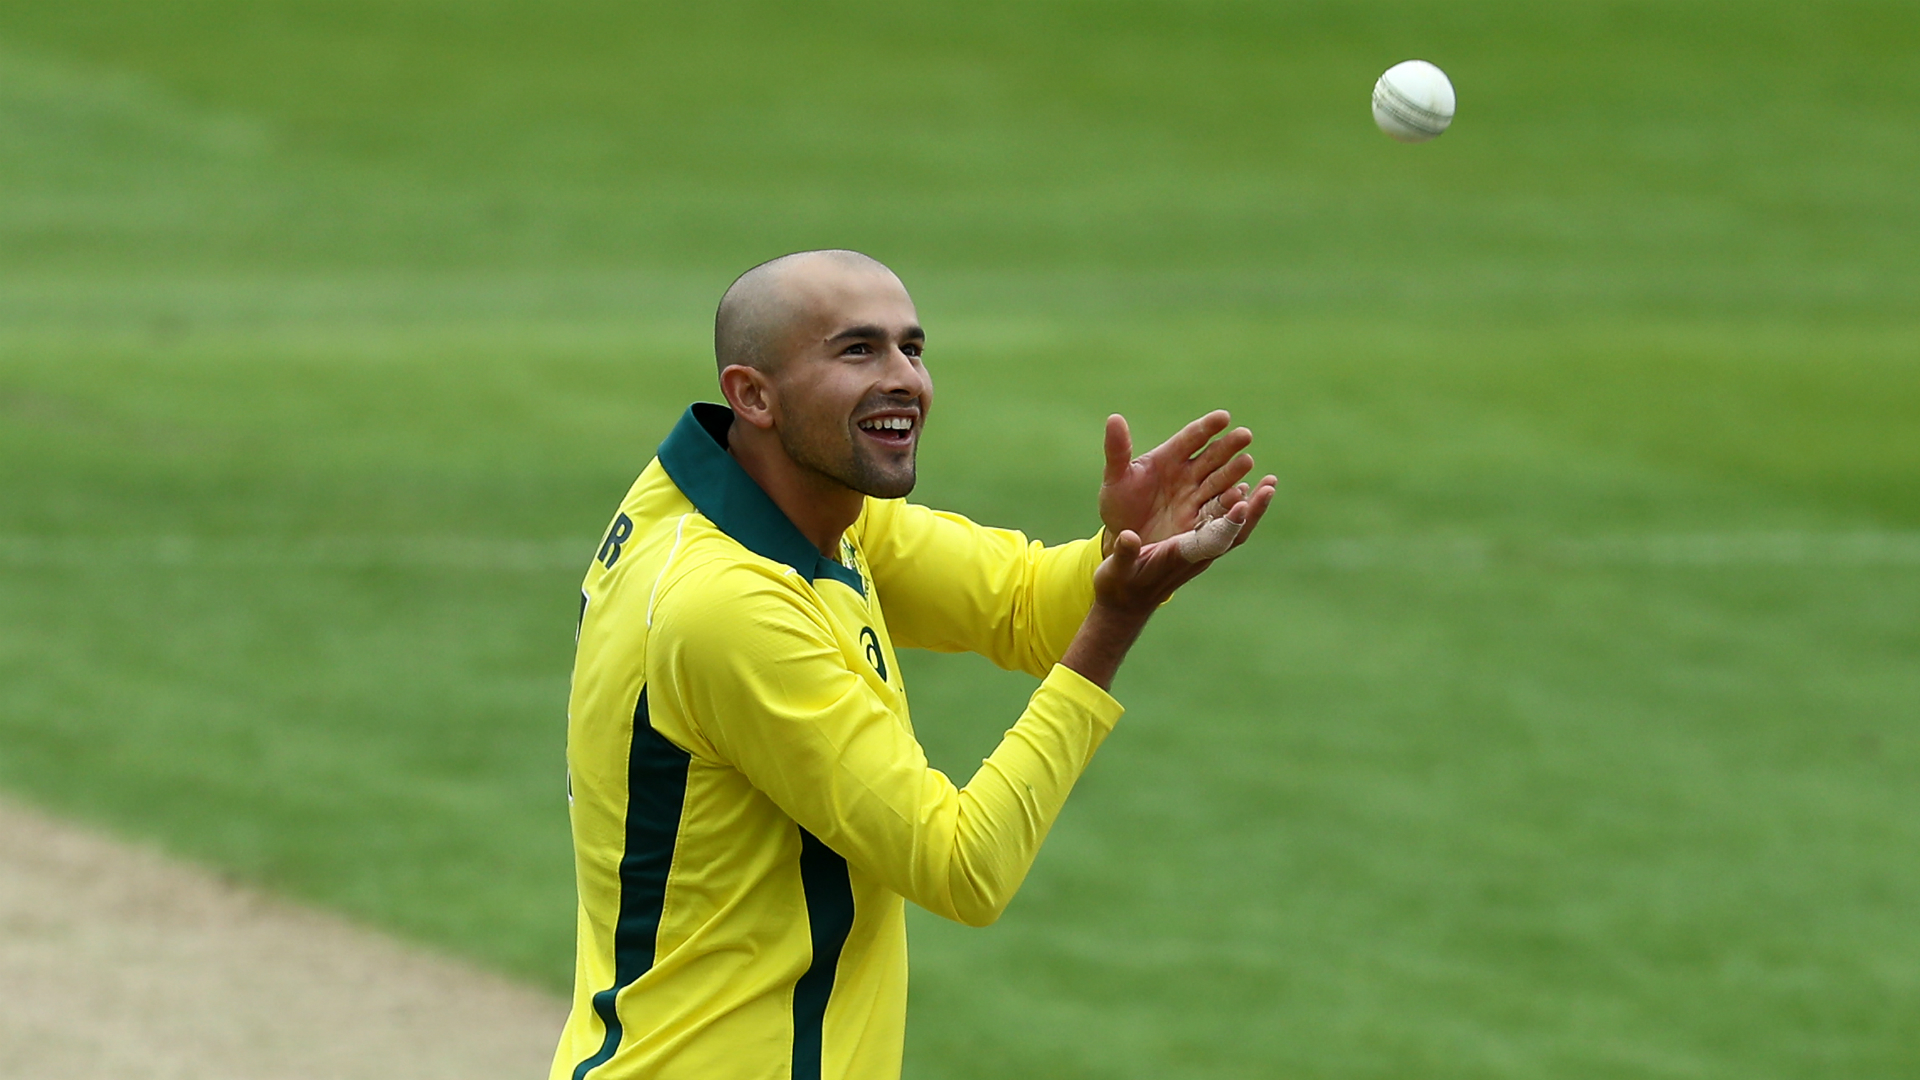 Agar takes a stunning hat-trick for Australia - and almost grabs another as spinner rips through South Africa